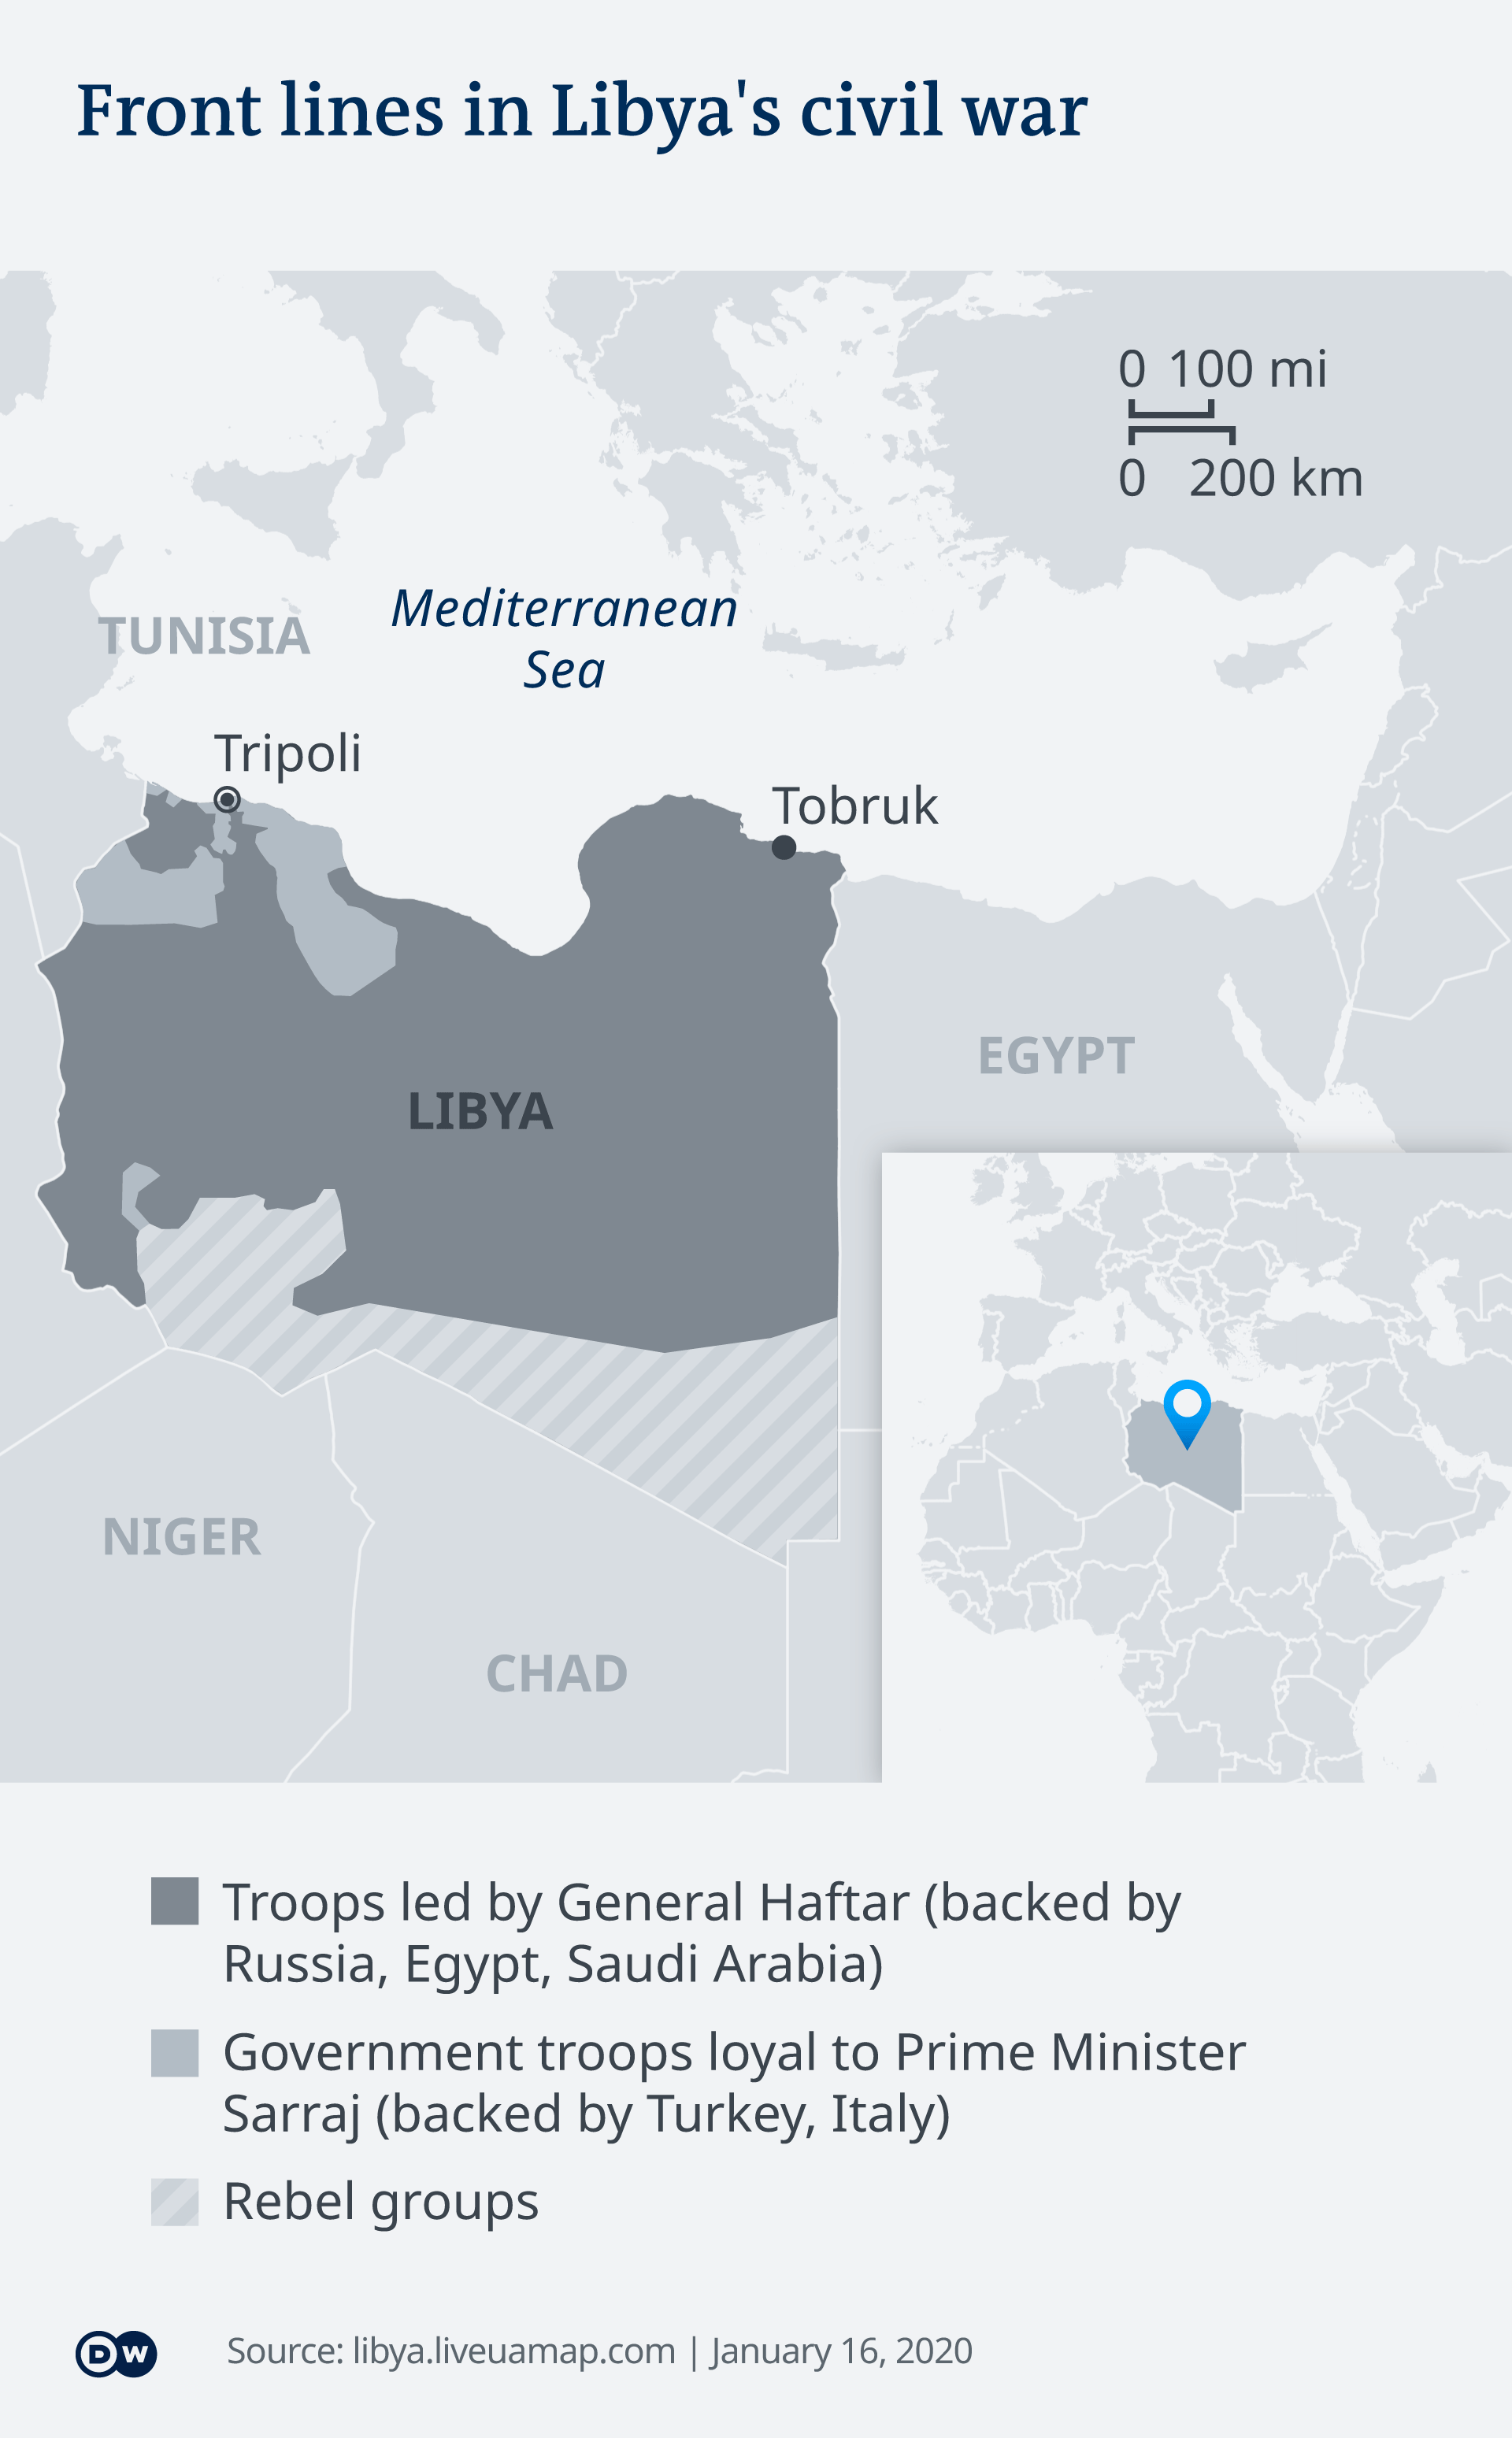 Map of the front lines in Libya